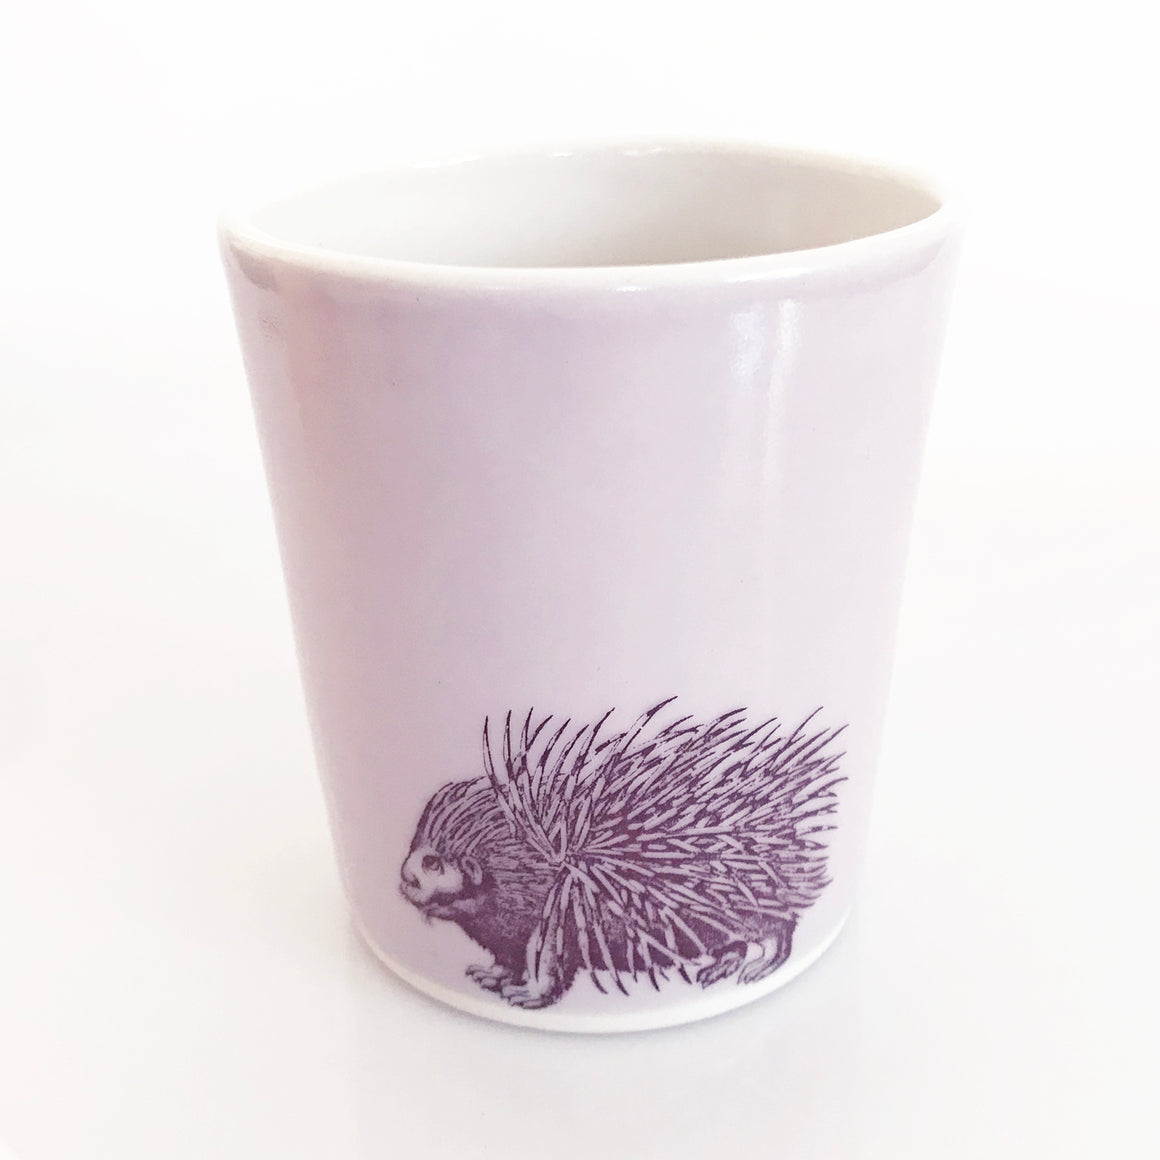 12oz Porcelain Animal Tumbler (Porcupine)